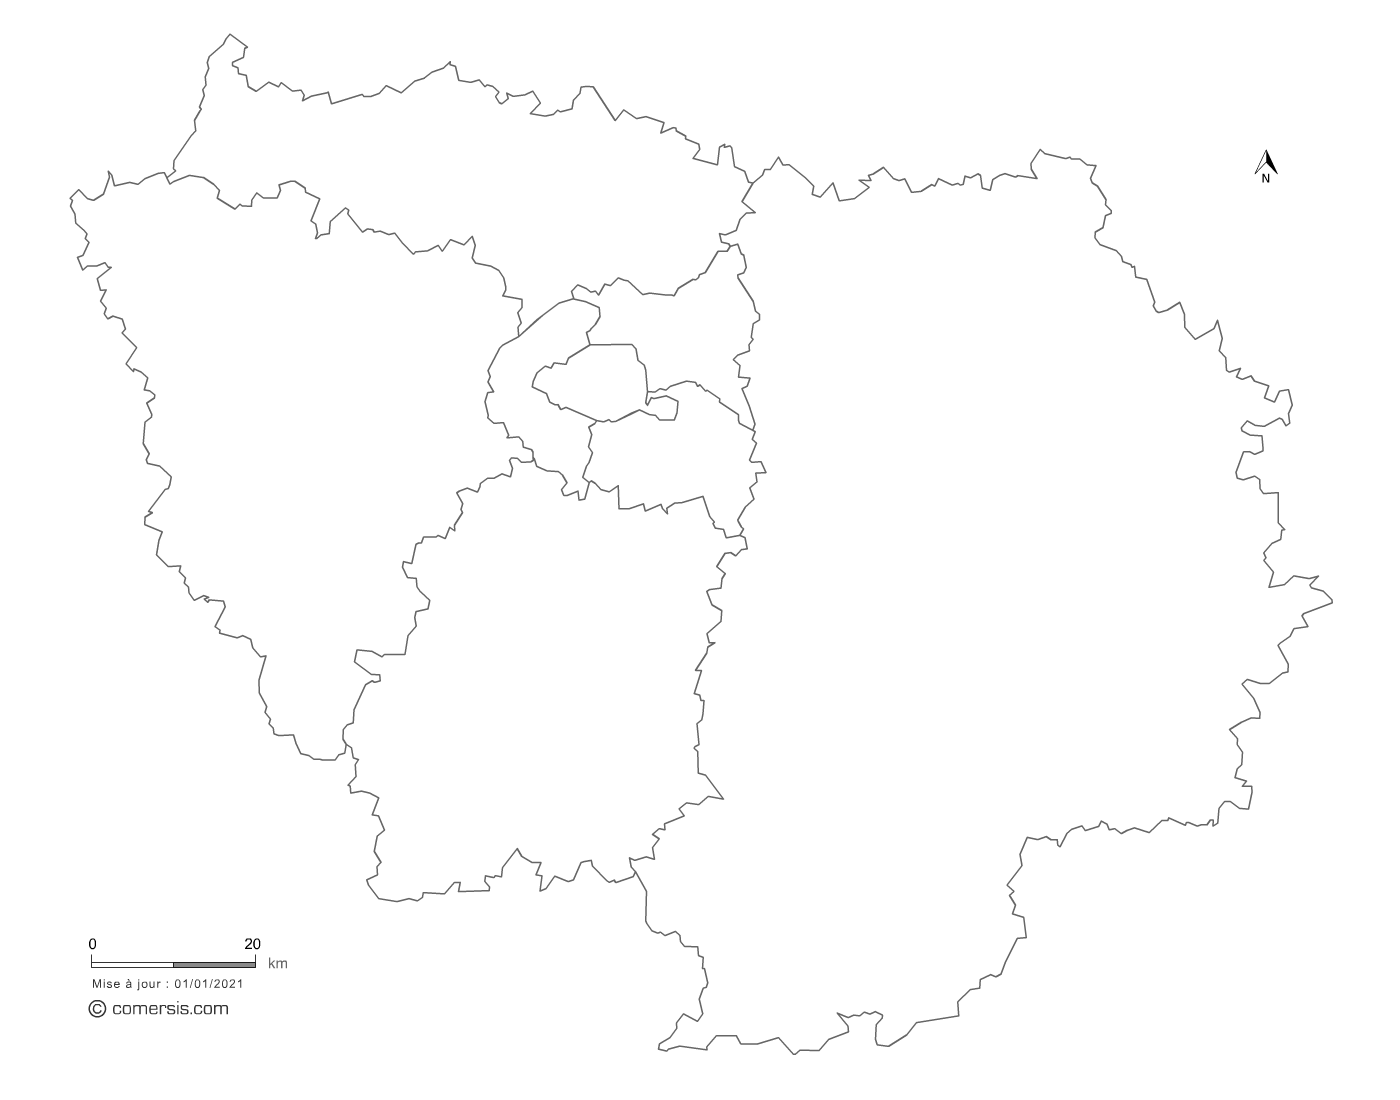 carte vectorielle d' Île-de-France